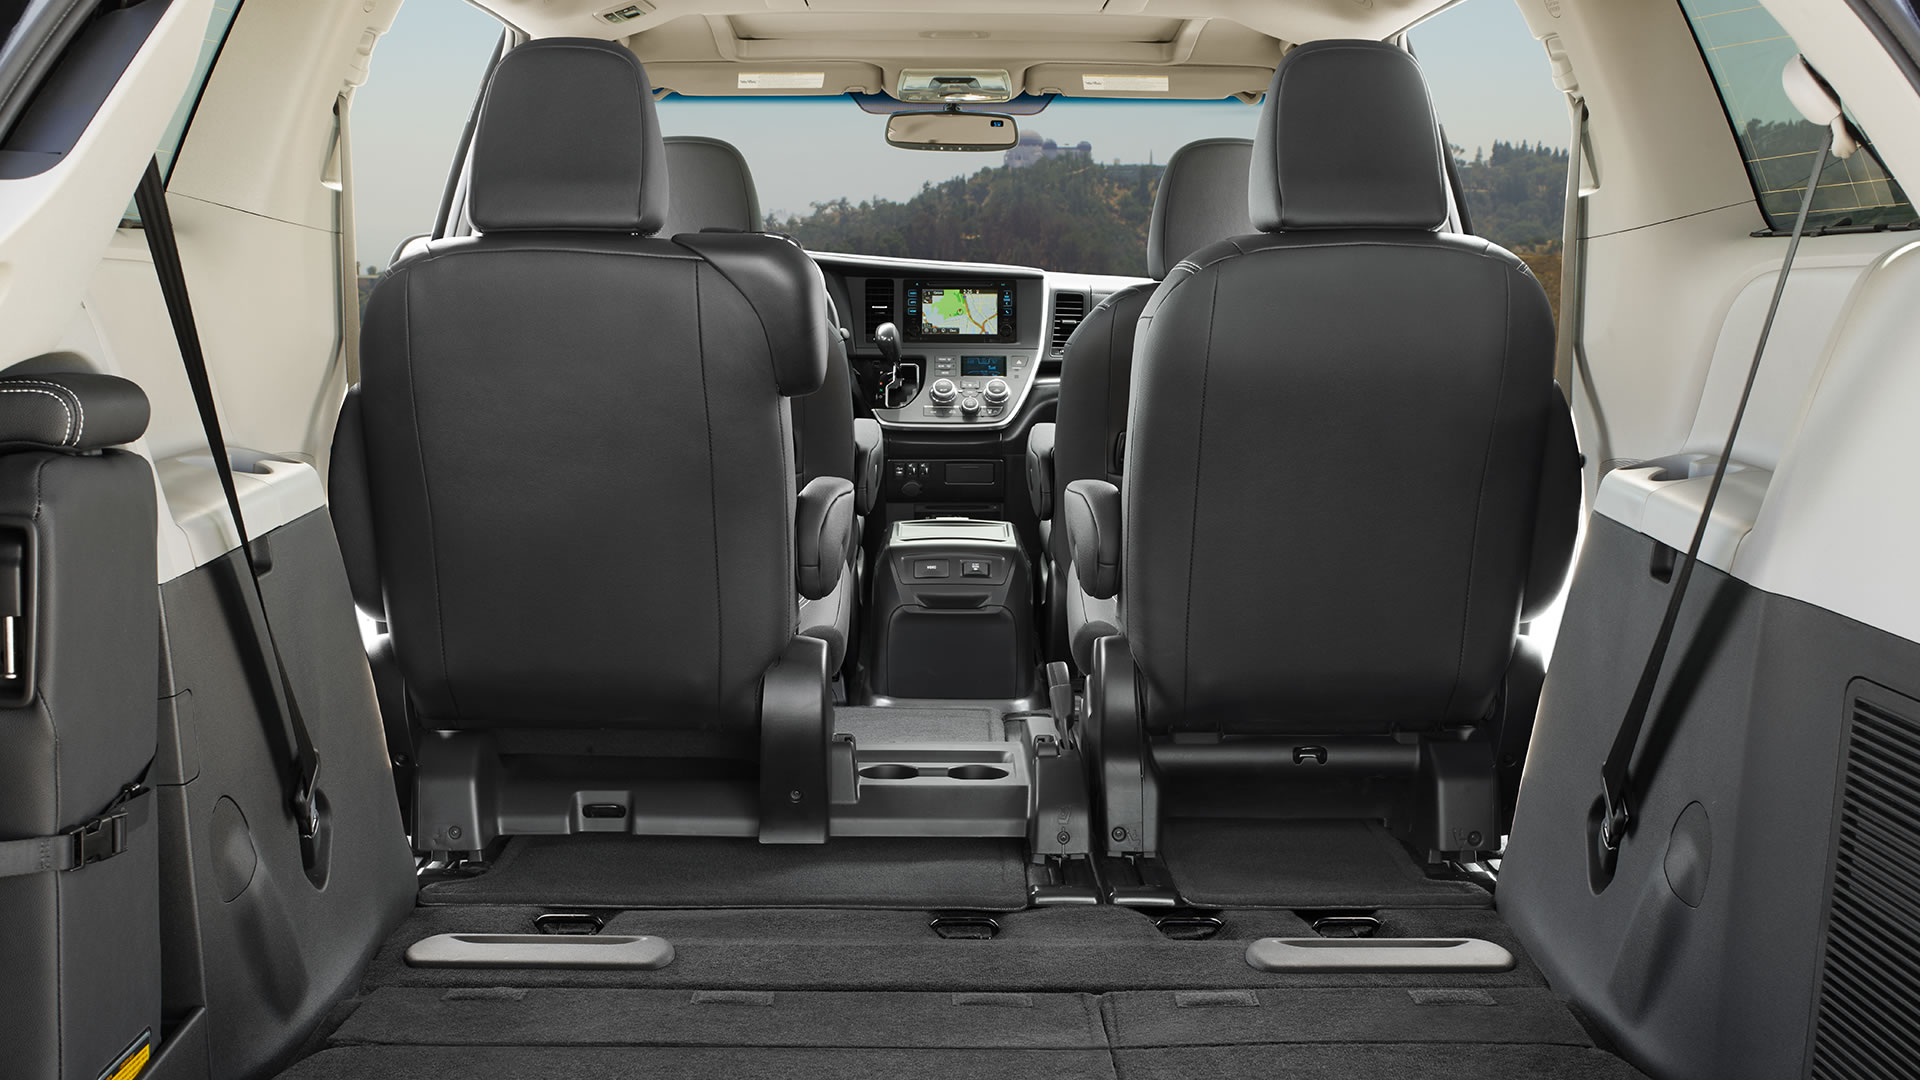 How Much Room Does The 2017 Toyota Sienna Have